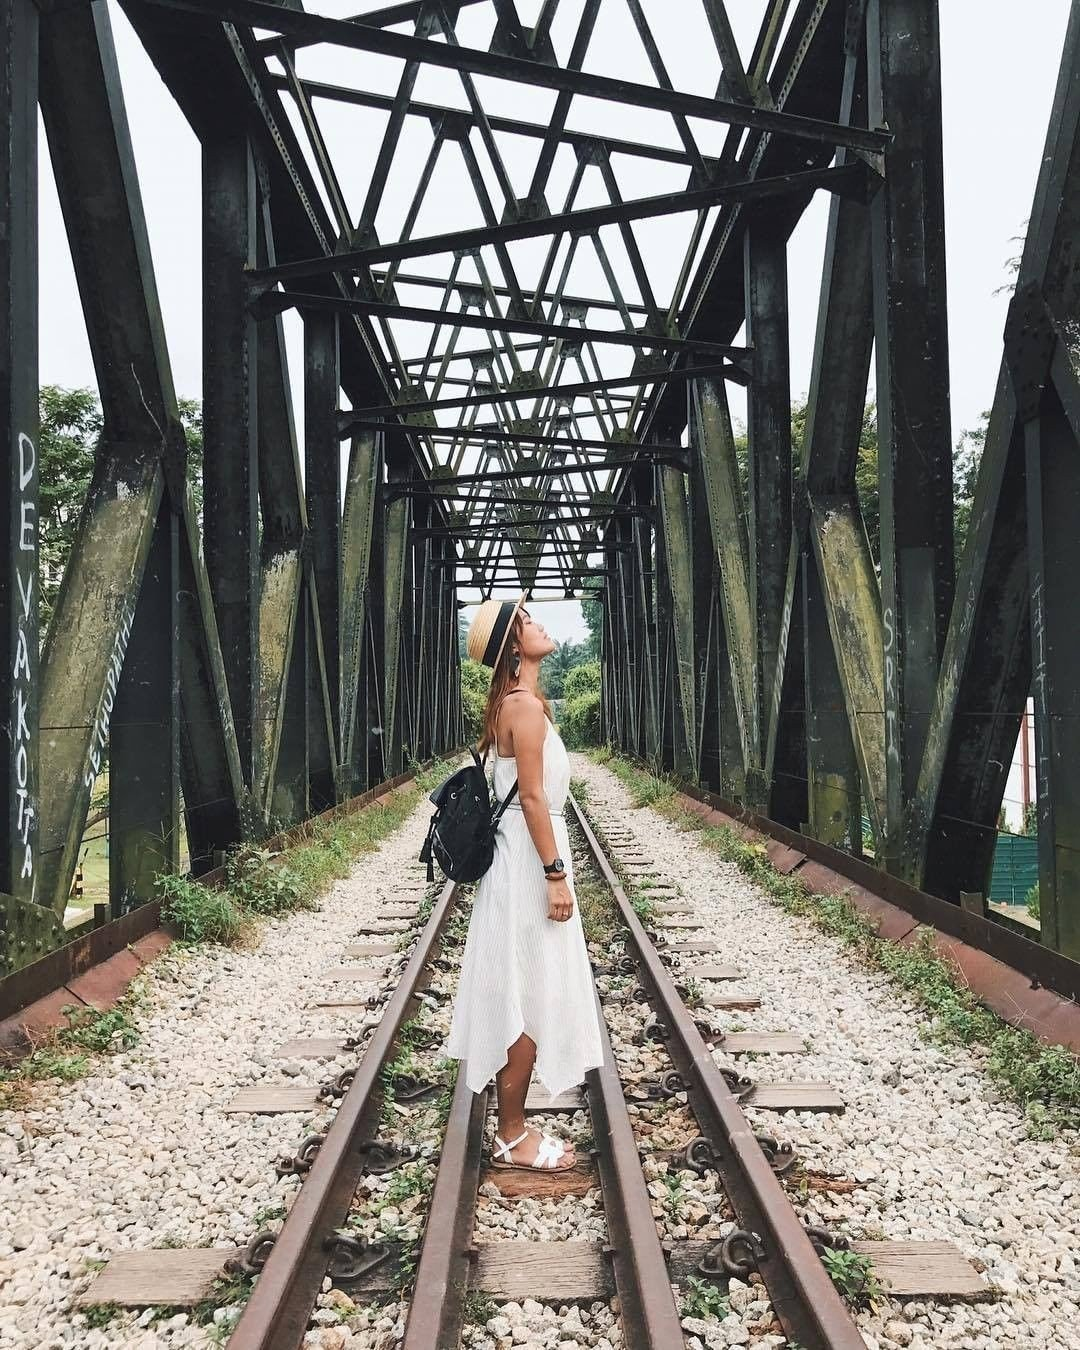 Bukit Timah Railway Station: top instagrammable places in Singapore